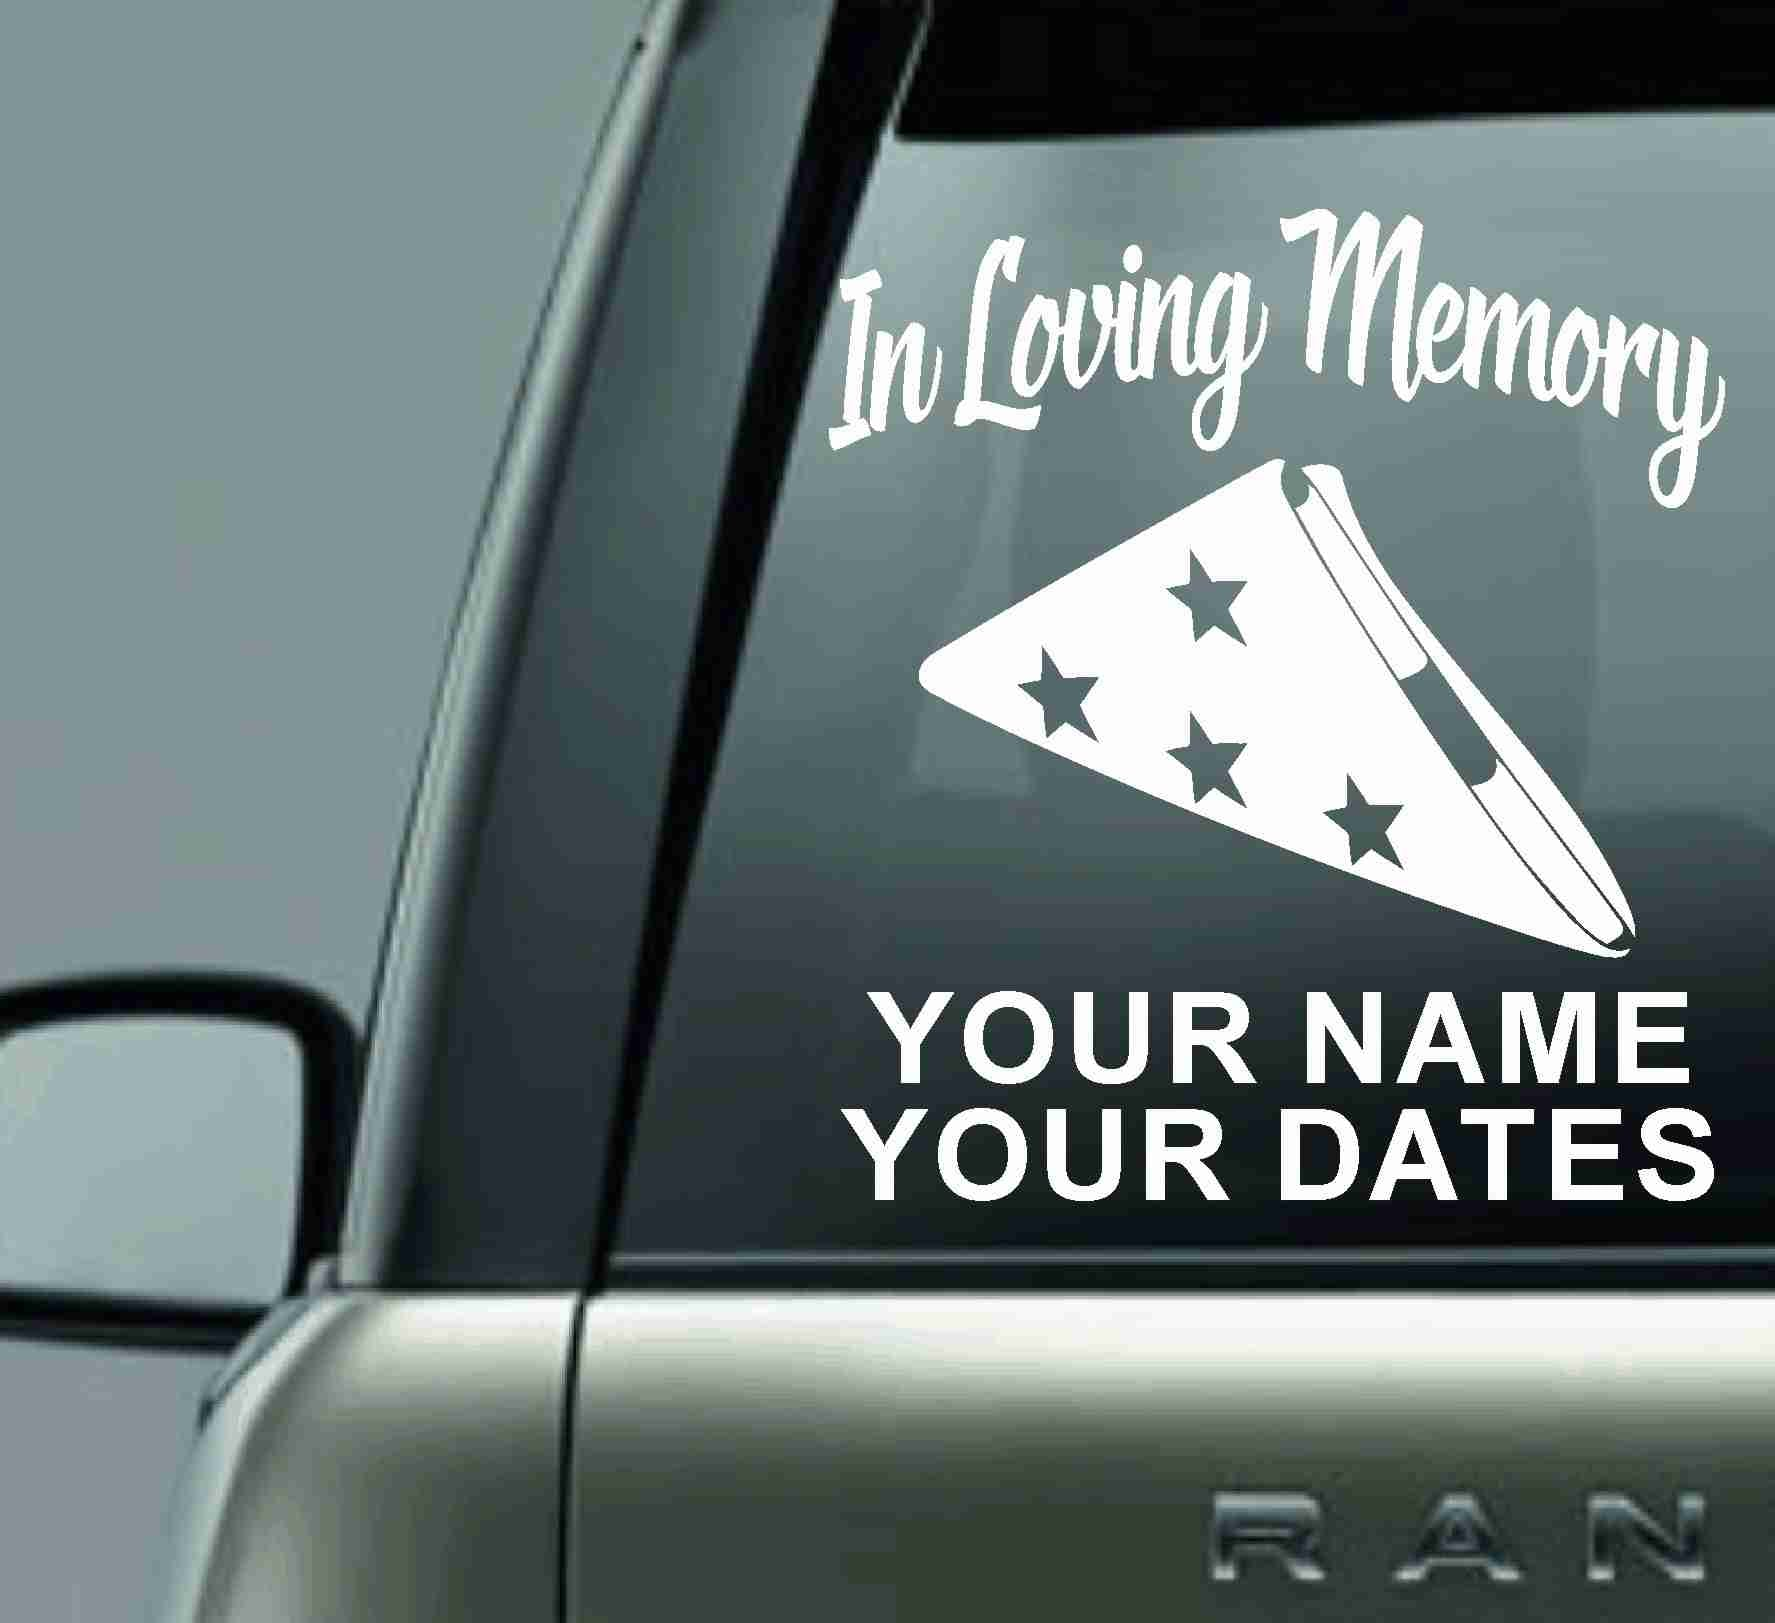 In Loving Memory Car Decals >> In Loving Memory Personalized Vinyl Car Decal Sticker